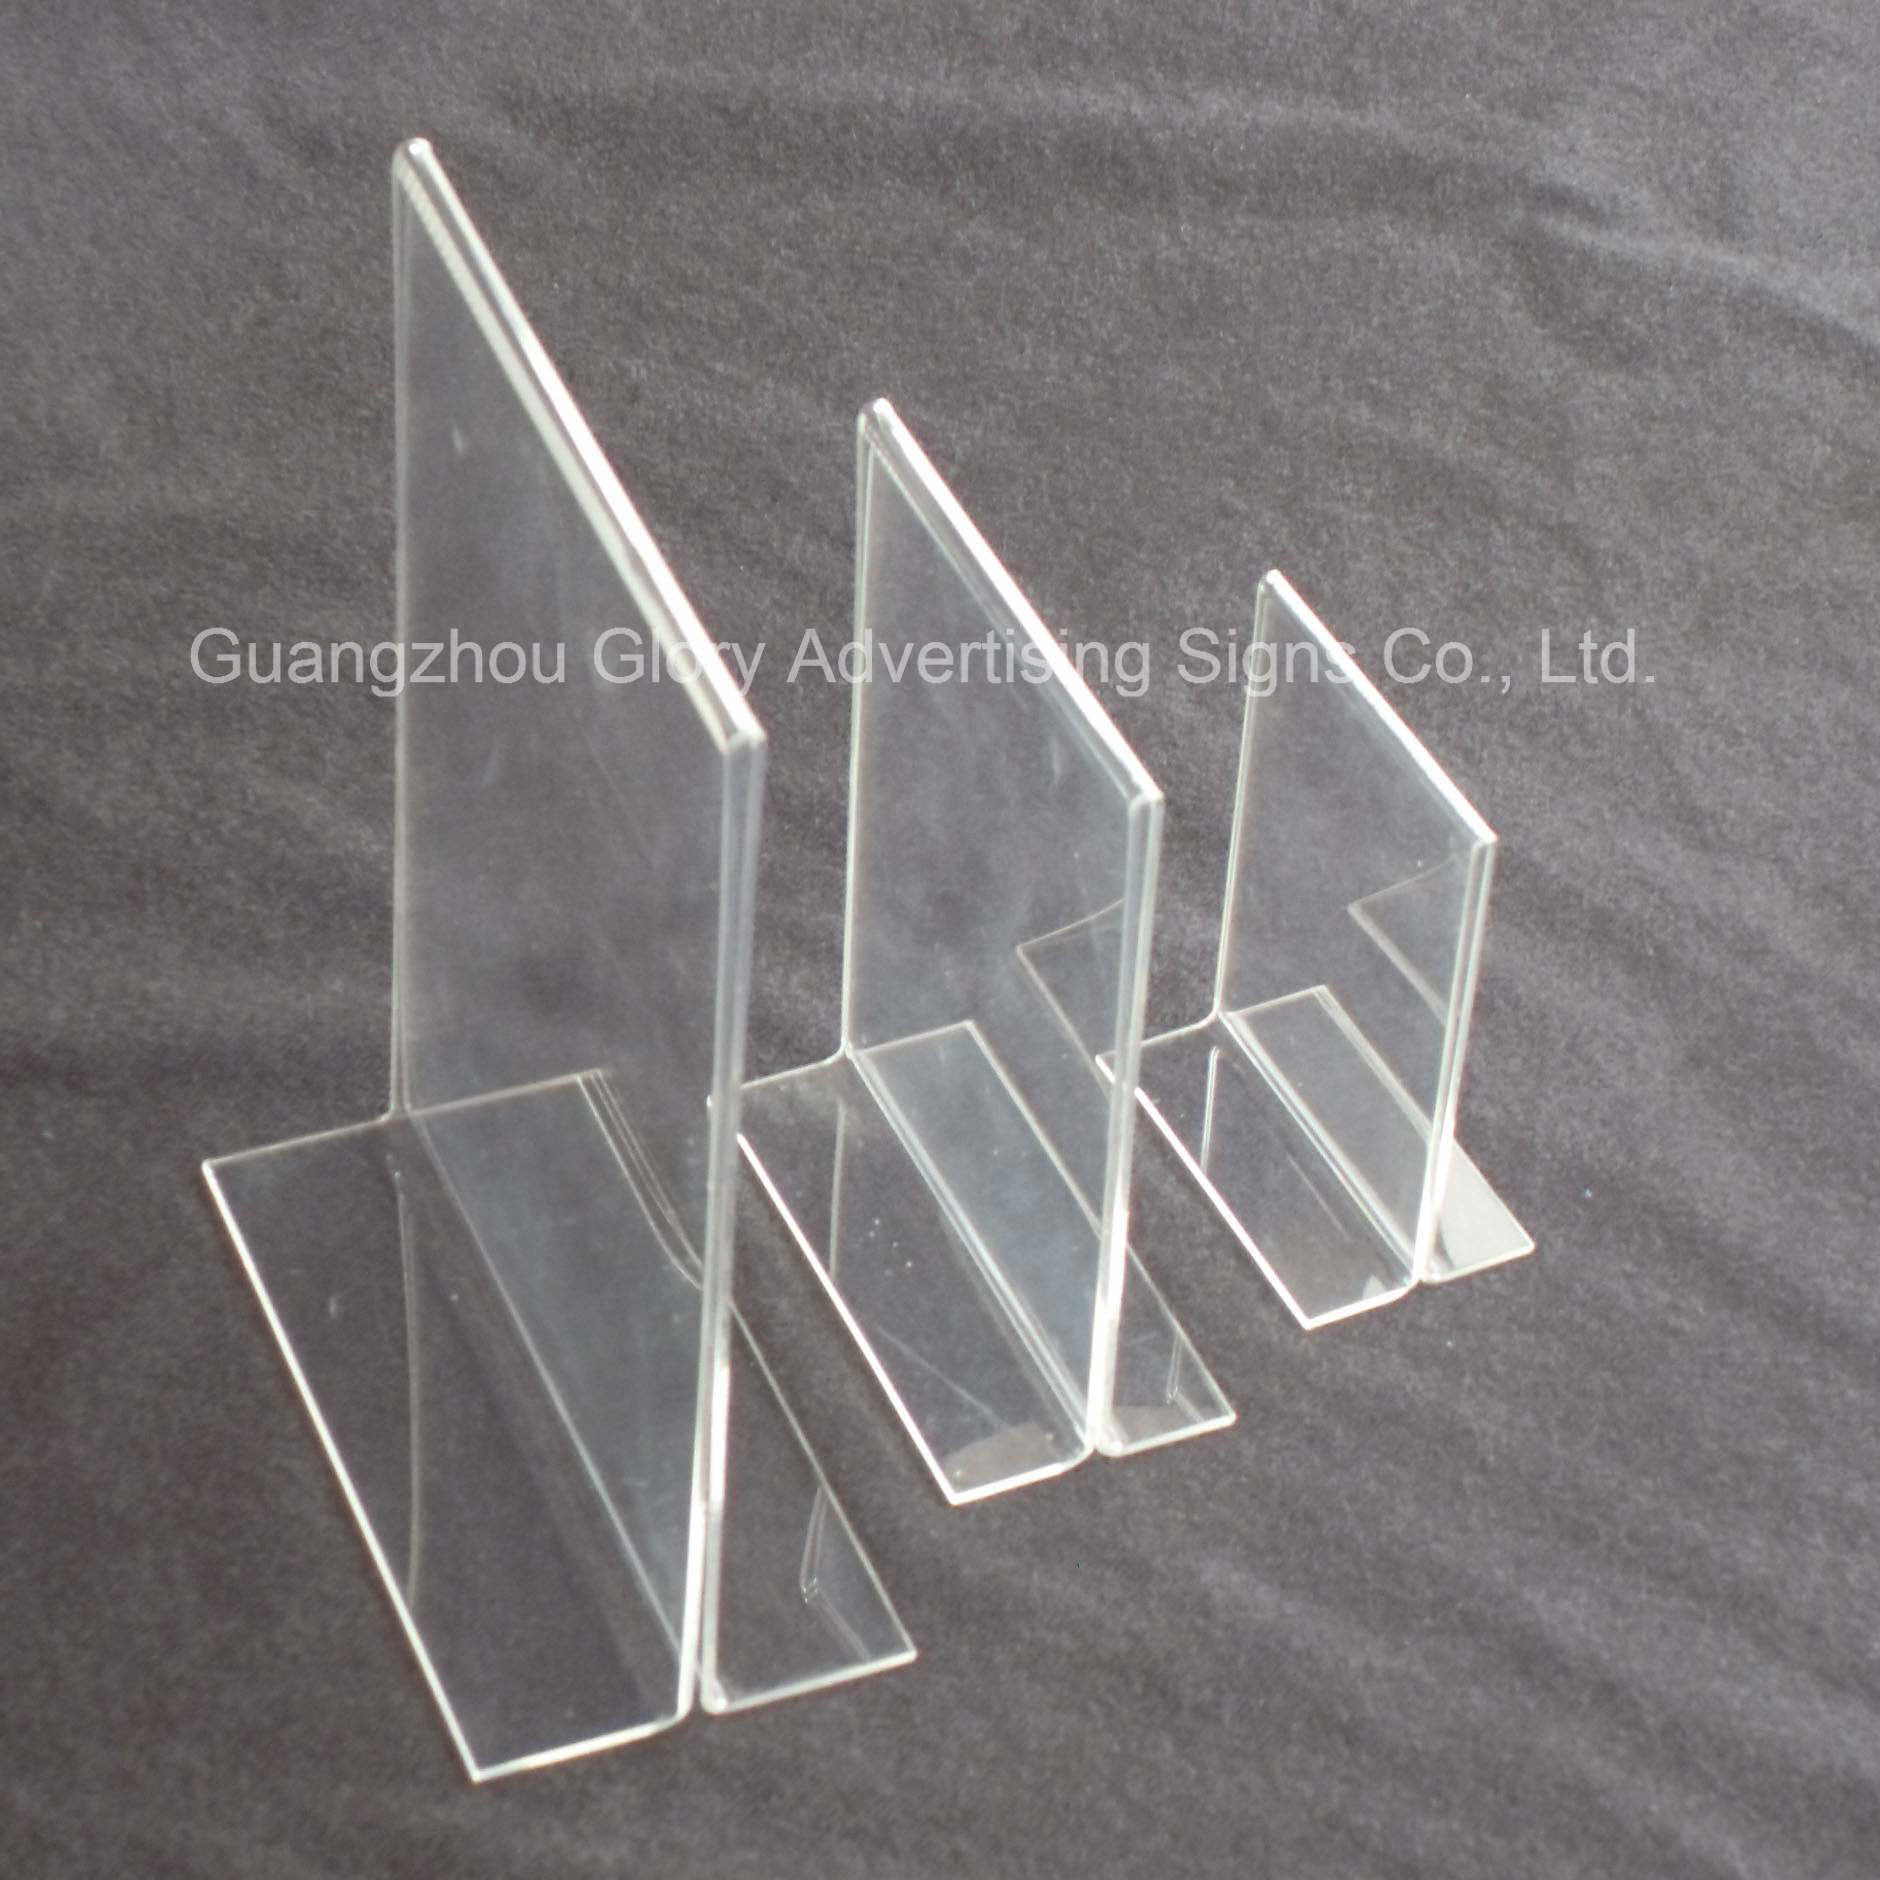 Plastic Acrylic Holder/Acrylic Brochure Holder/Acrylic Menu Holder